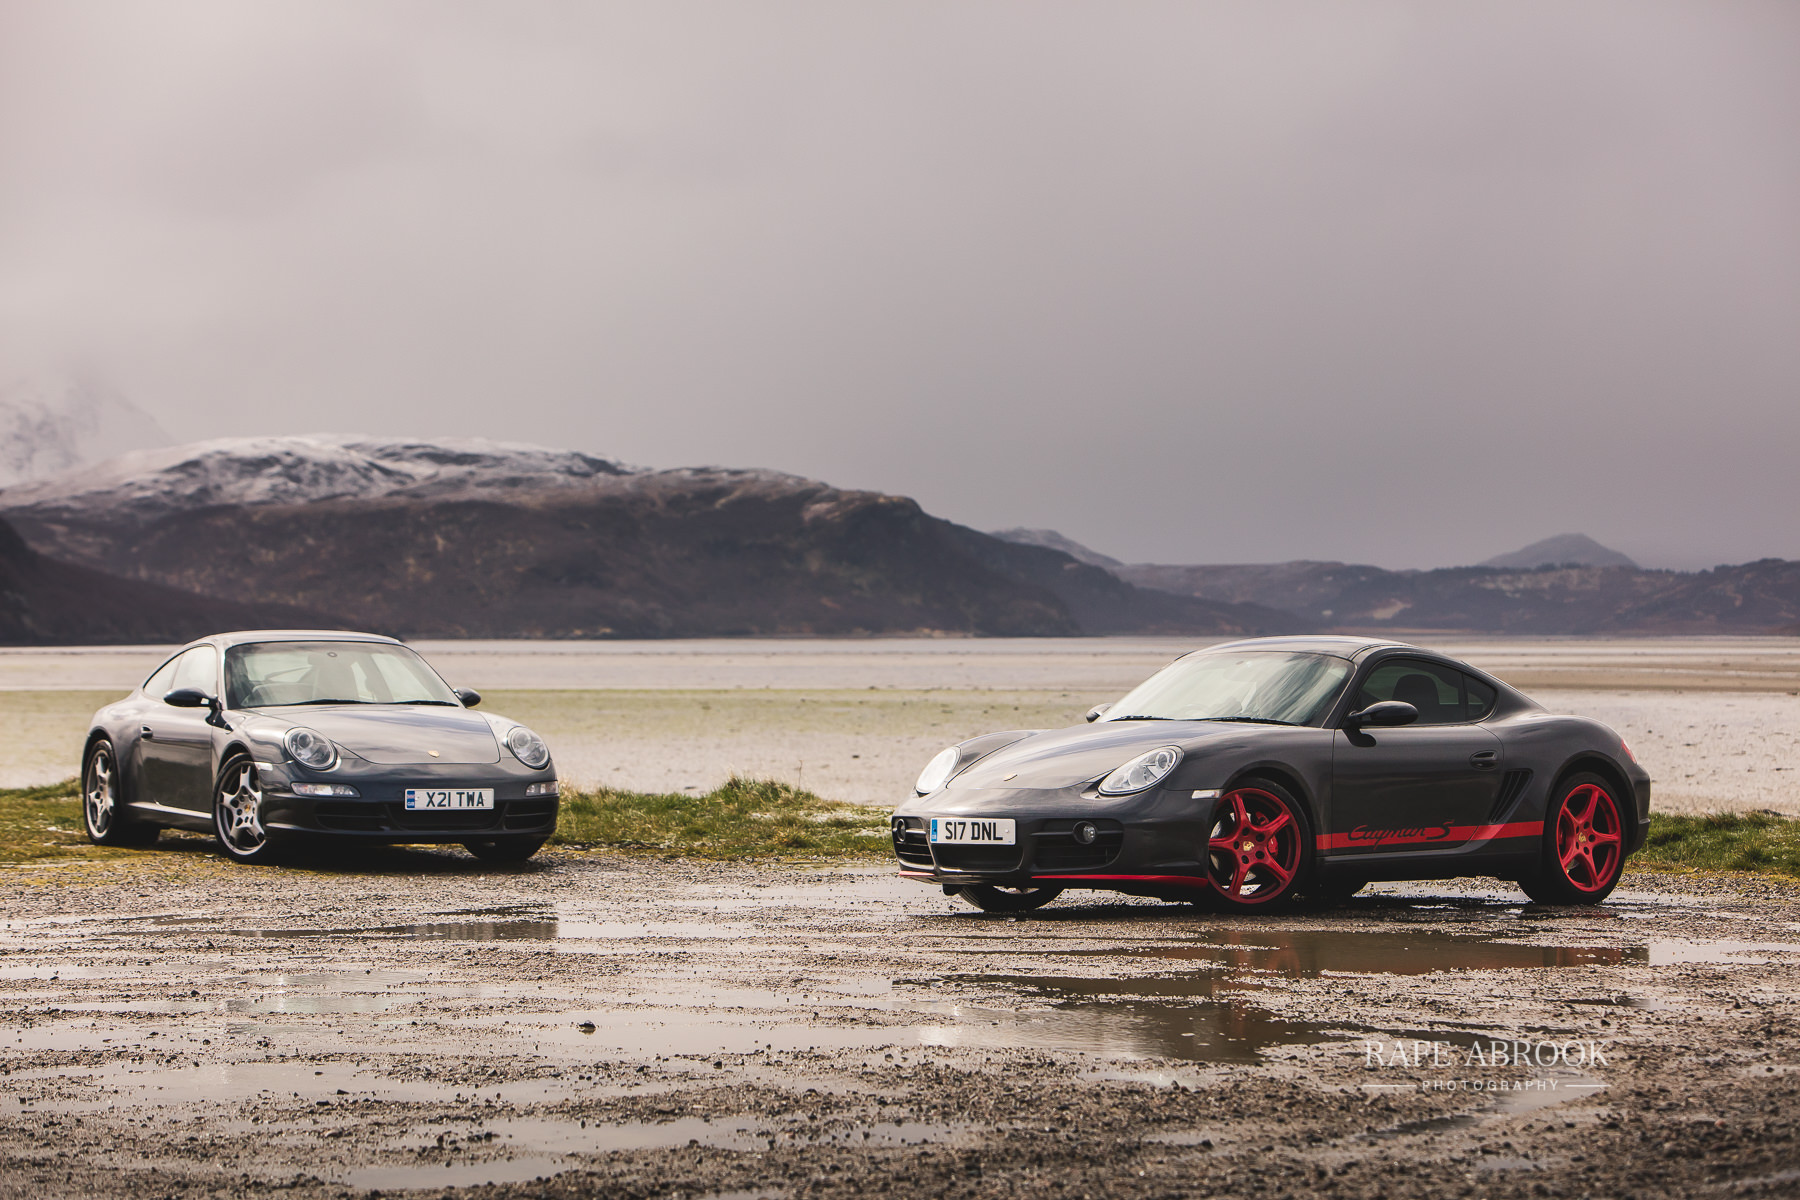 north coast 500 scotland porsche cayman gt4 golf r estate rafe abrook photography-1196.jpg